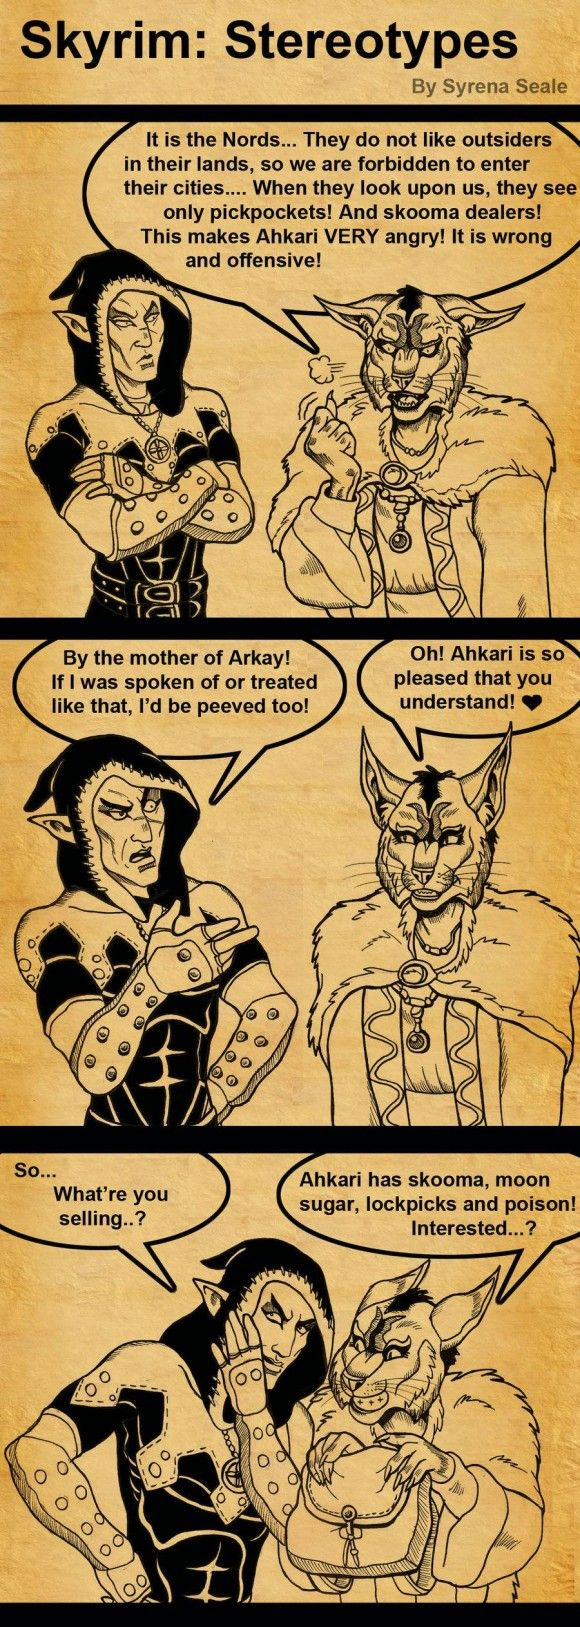 257 best Skyrim images on Pinterest | Videogames, Game and Video games